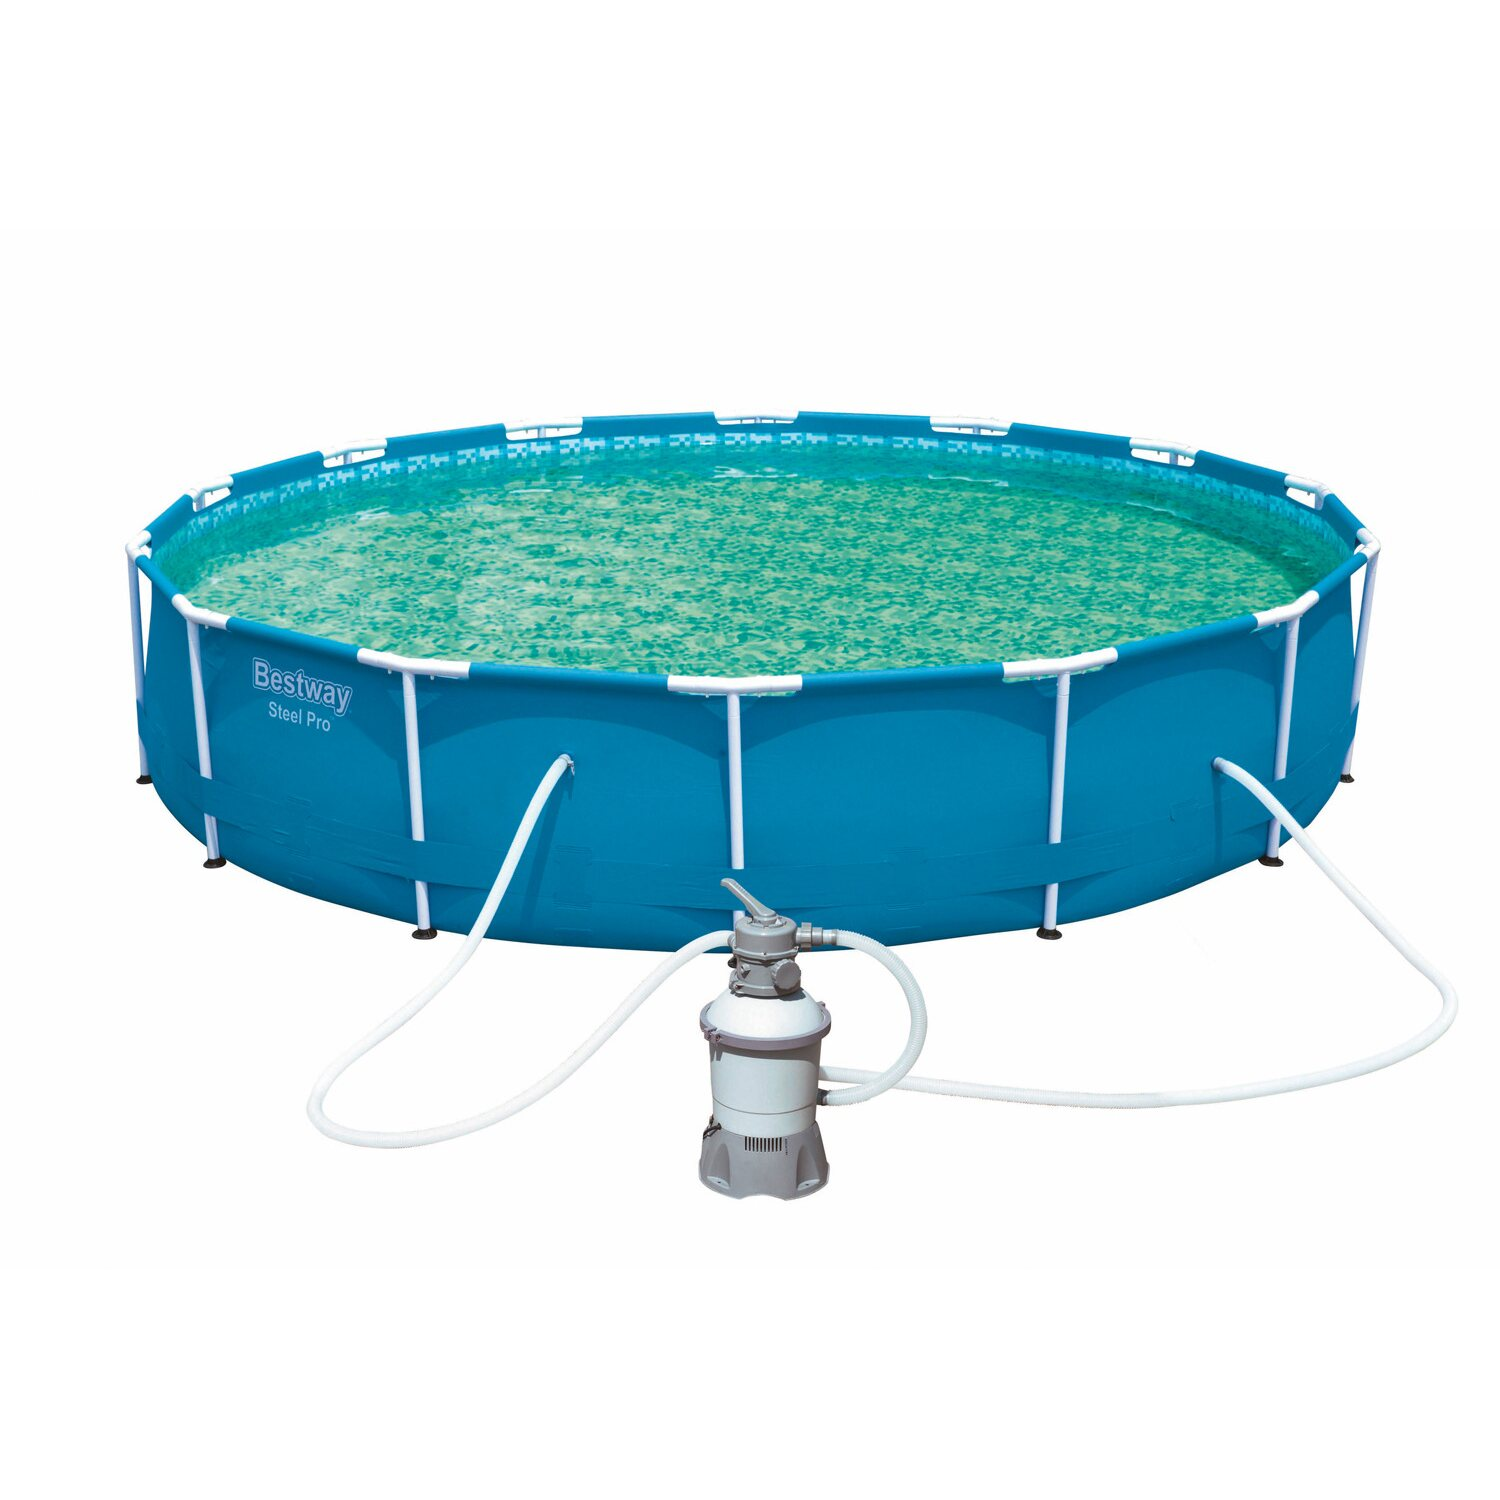 Bestway steel pro frame pool set 427 cm x 84 cm for Obi pool set